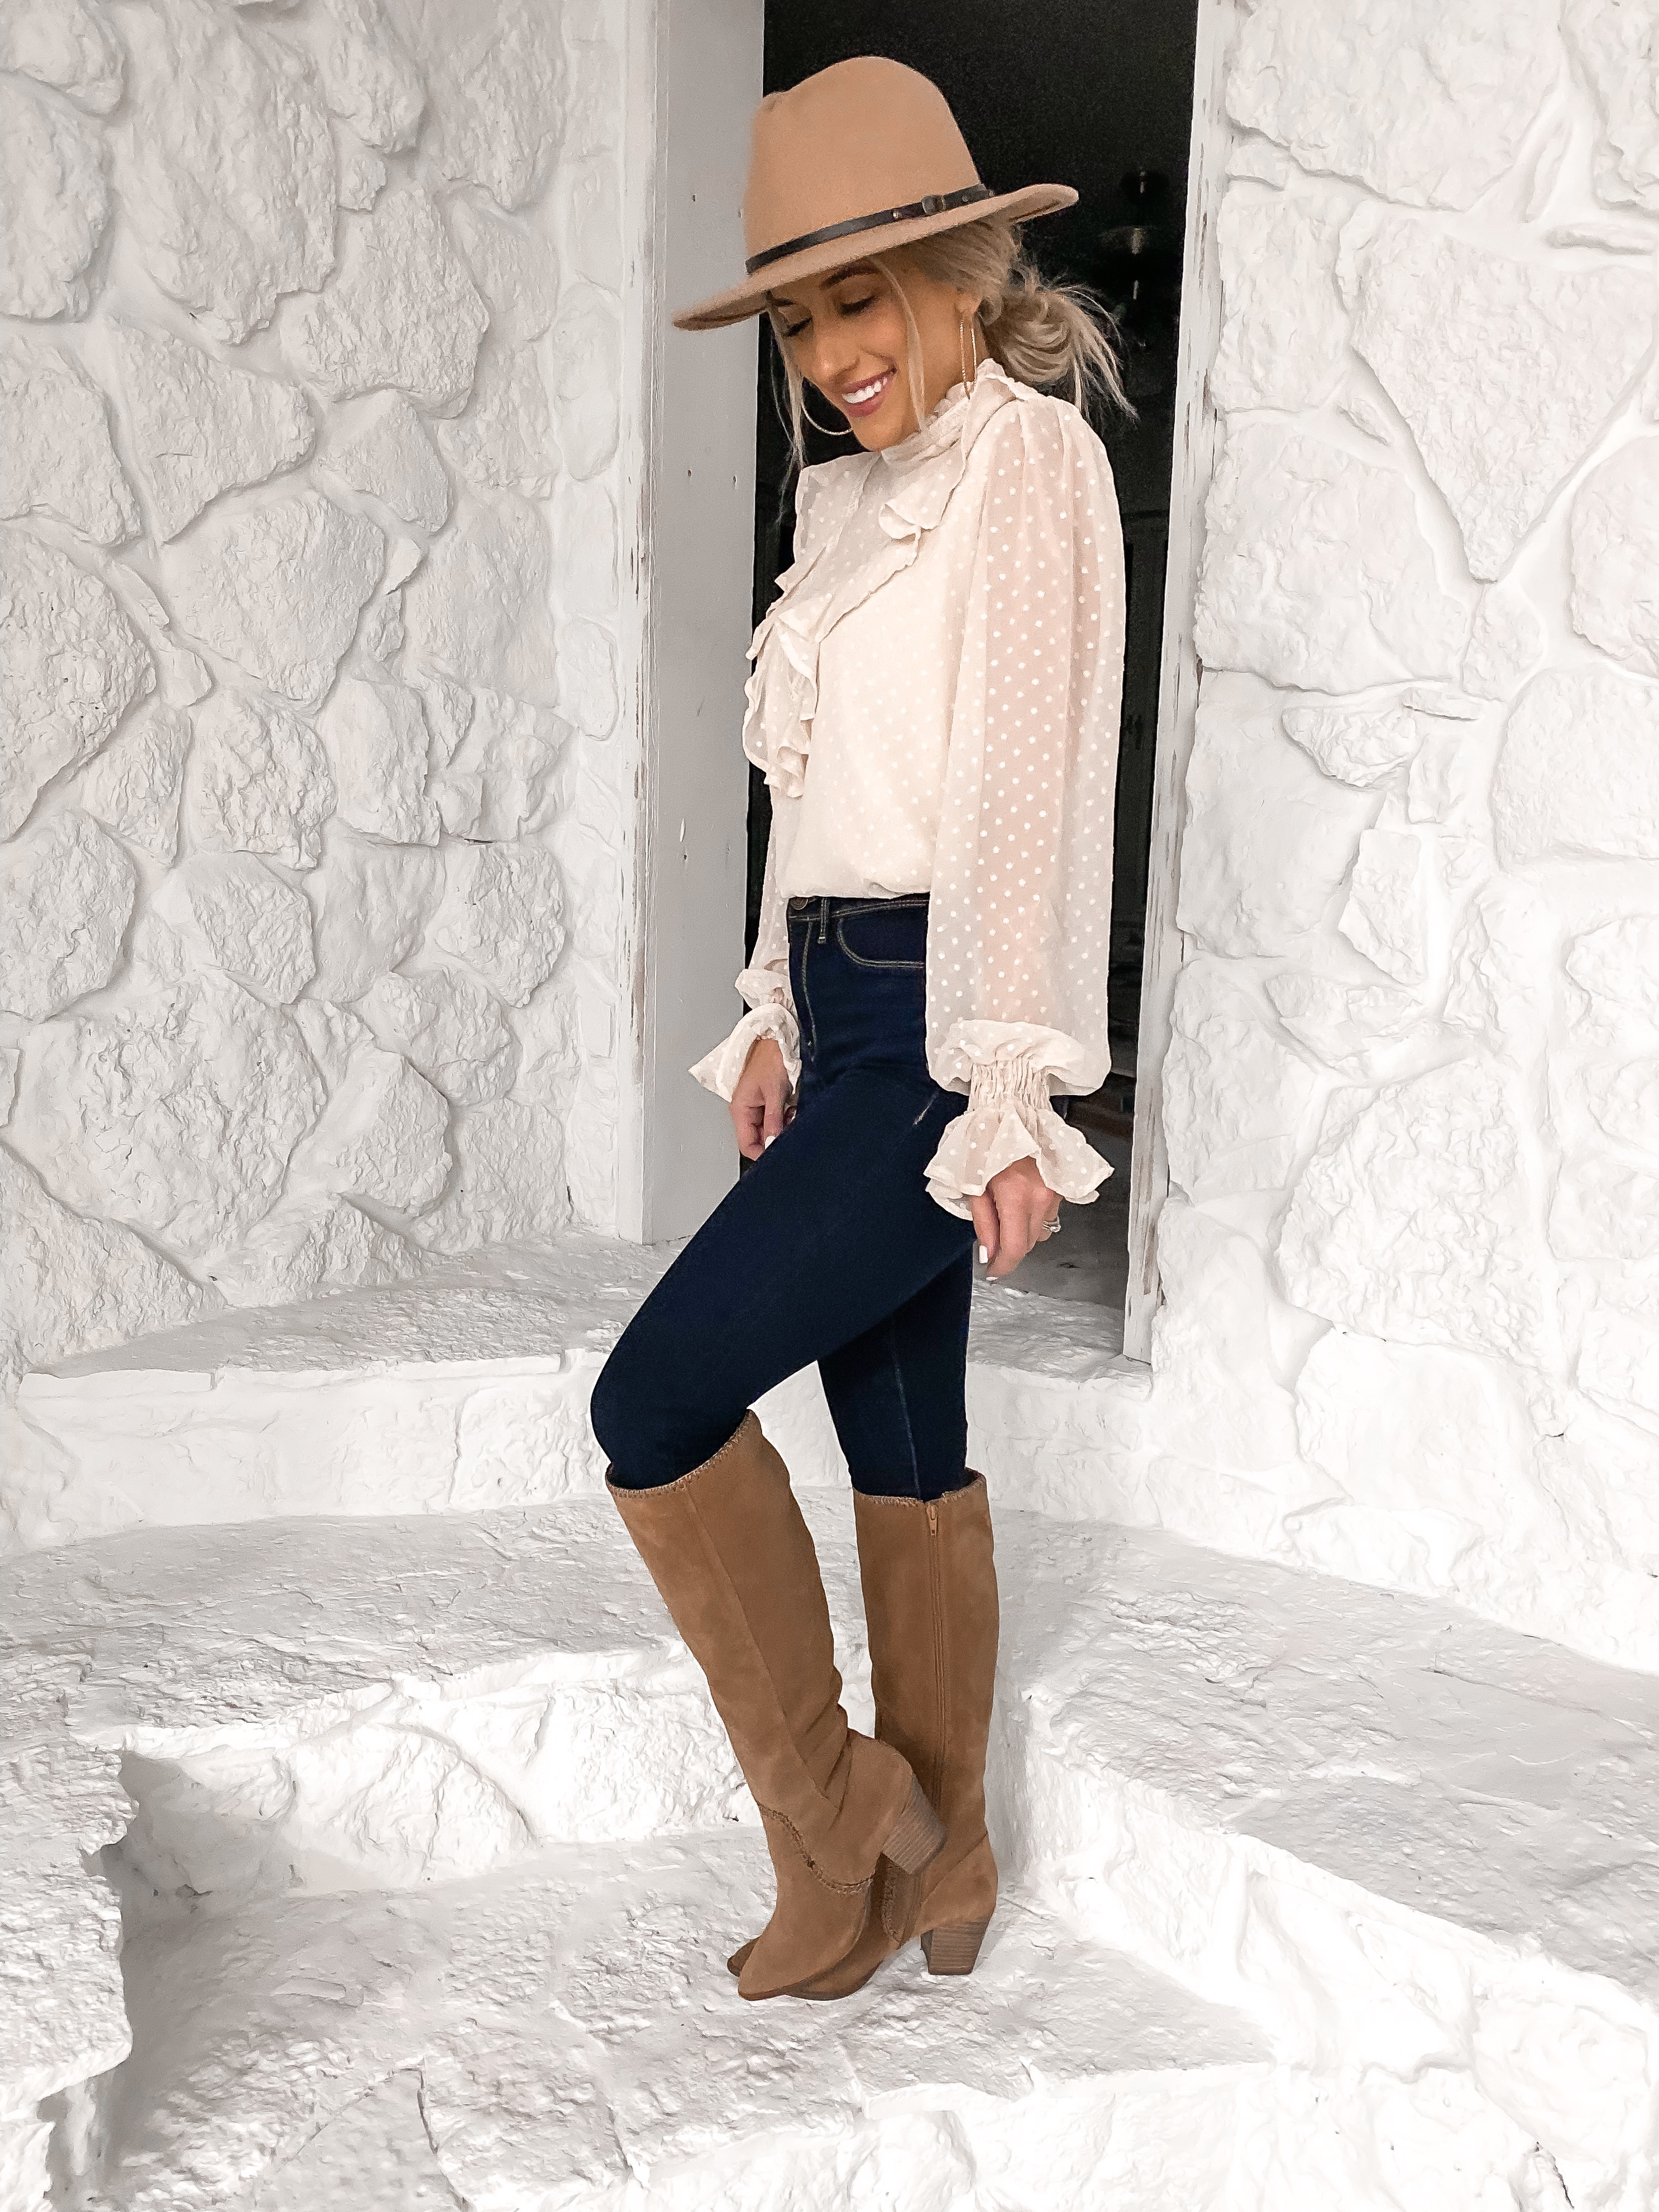 fall outfit idea ruffle blouse tan riding boots affordable fall outfit laura beverlin